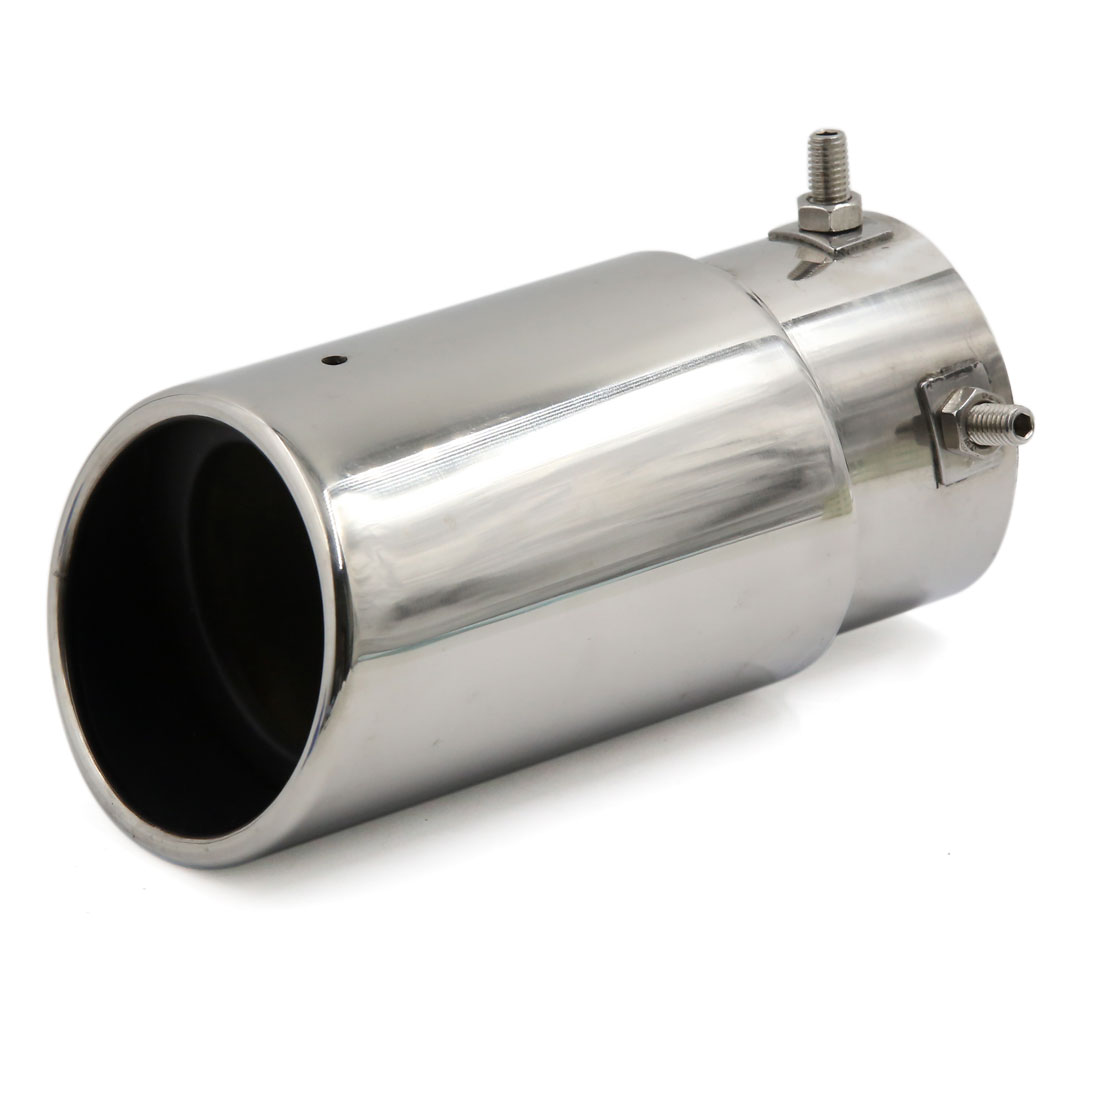 Silver Tone Exhaust Muffler Tip Modified Silencer Tail Pipe for Honda